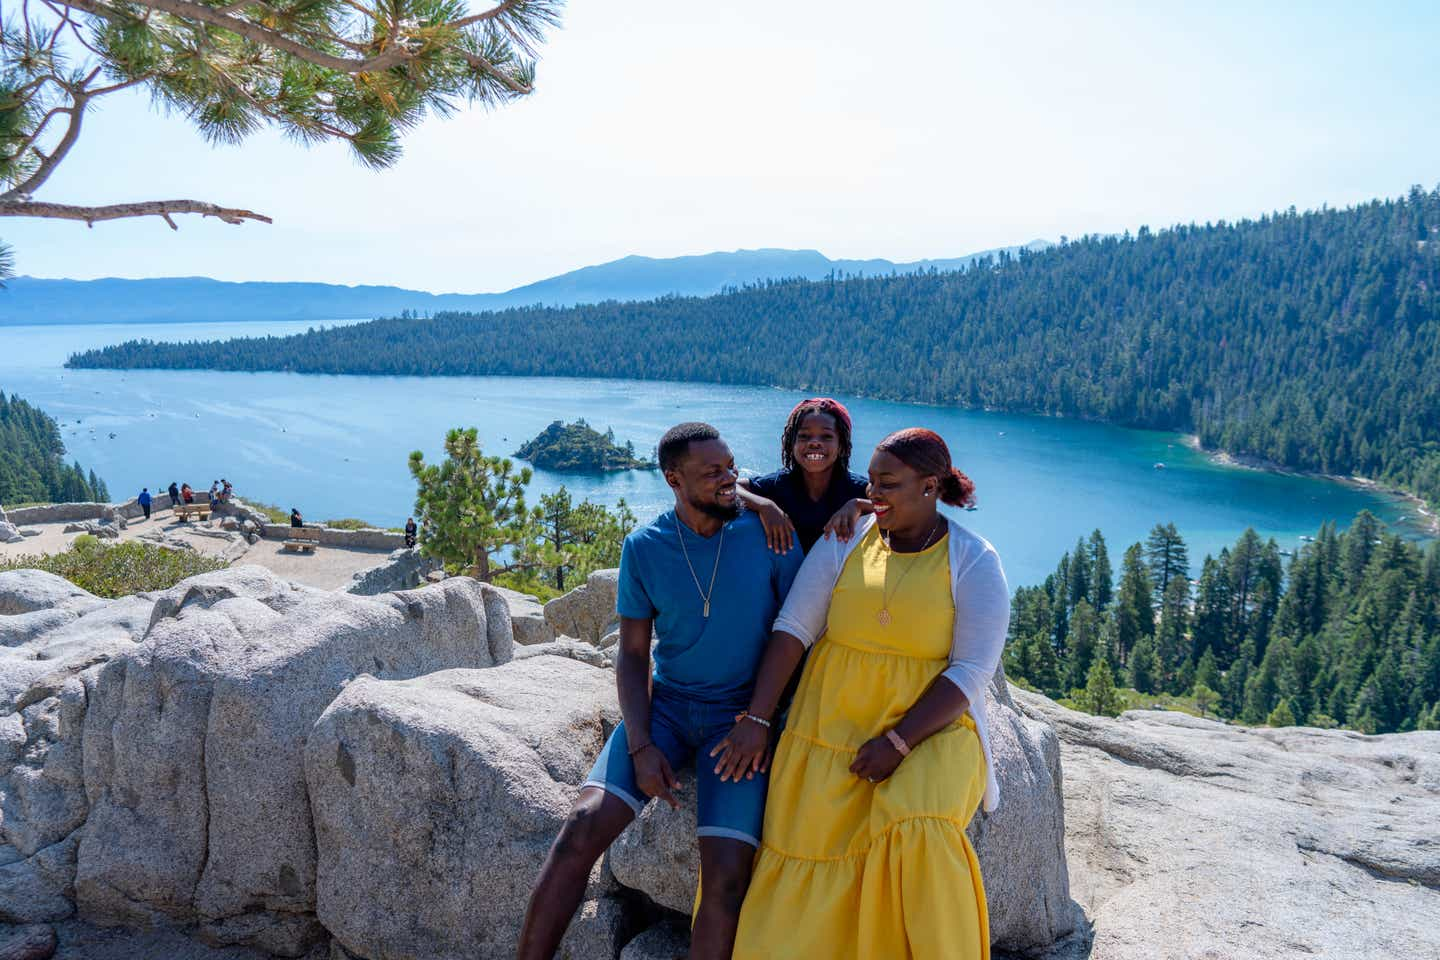 Karen and her family at Emerald Bay State Park